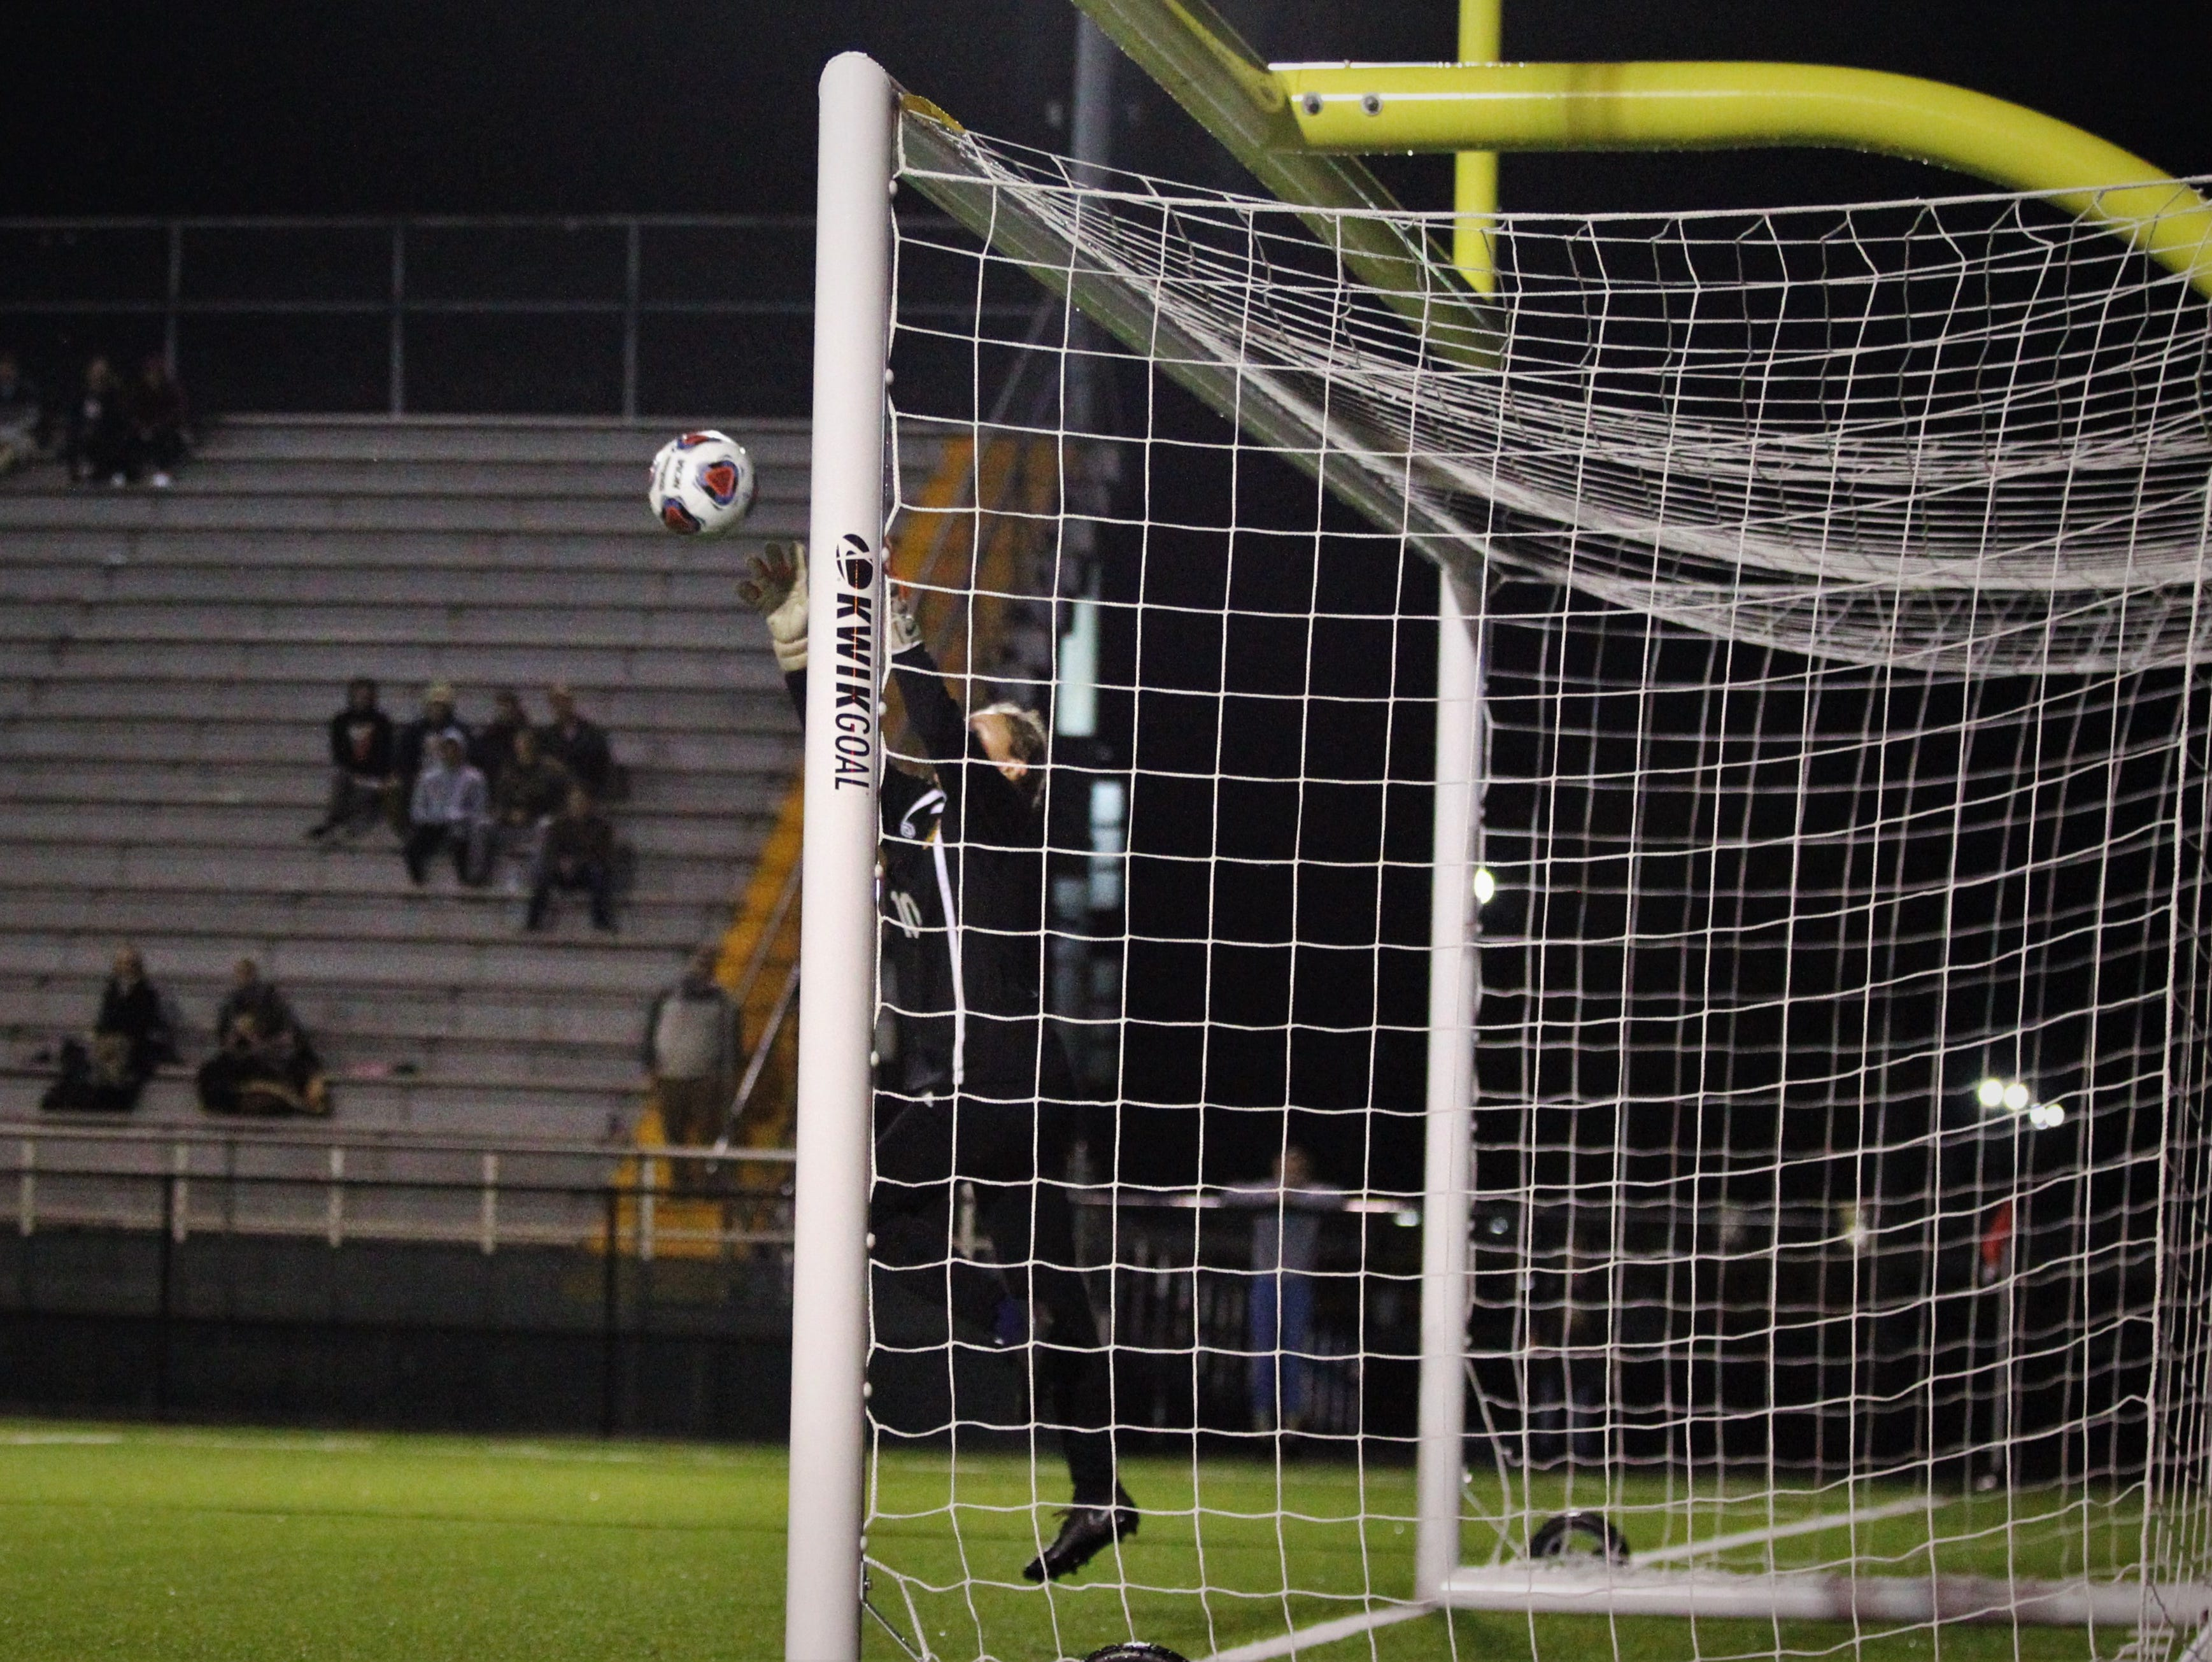 Leon keeper Regan Hermeling makes a a save in the final minutes as Leon's girls soccer team beat Lincoln 2-1 in the District 2-4A championship at Gene Cox Stadium on Feb. 1, 2019.